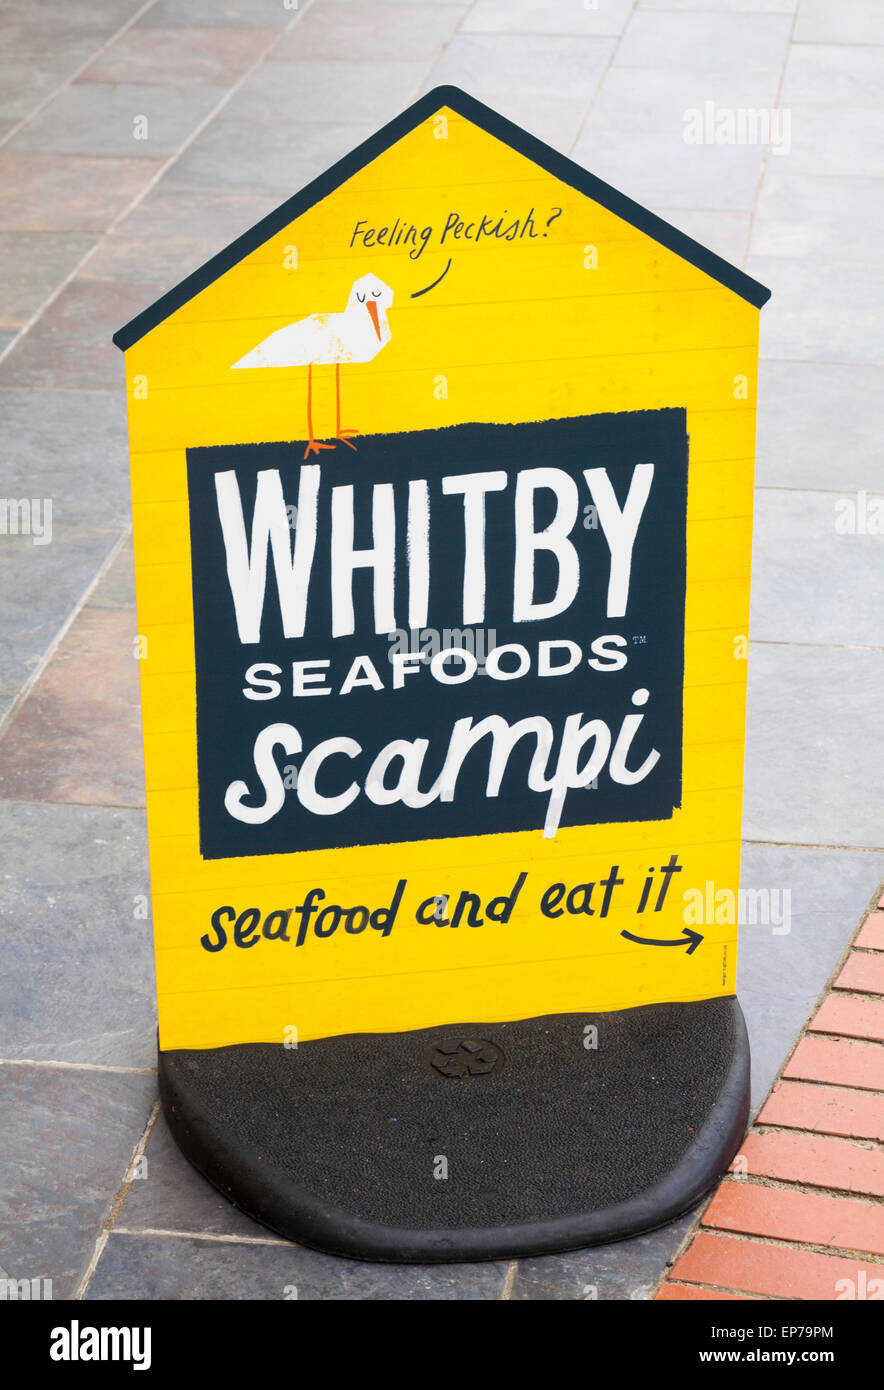 feeling peckish Whitby seafoods scampi seafood and eat it sign at The Parrog at the southern end of Newport Beach, - Stock Image